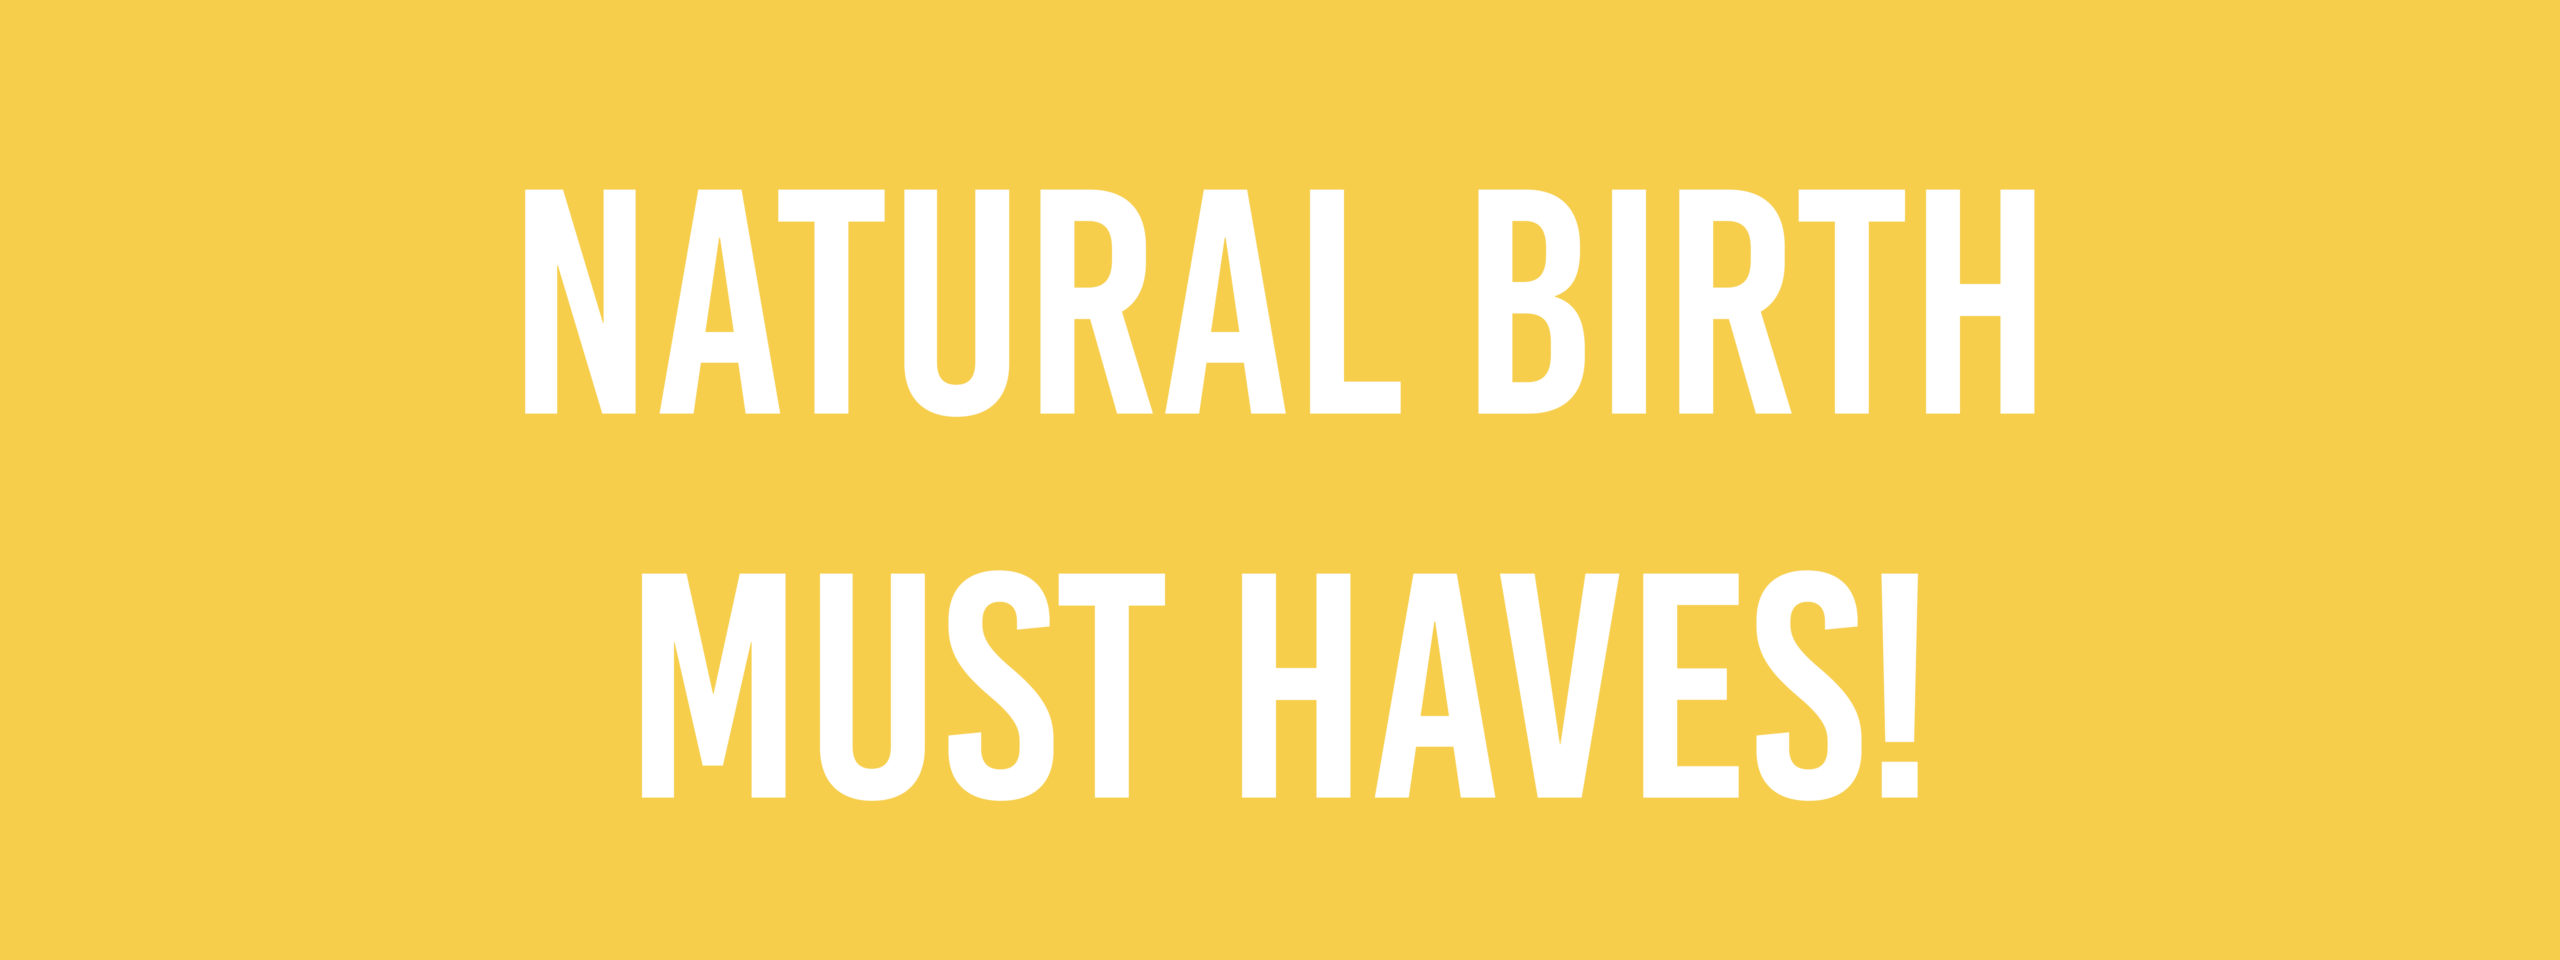 Natural Birth Must Haves!